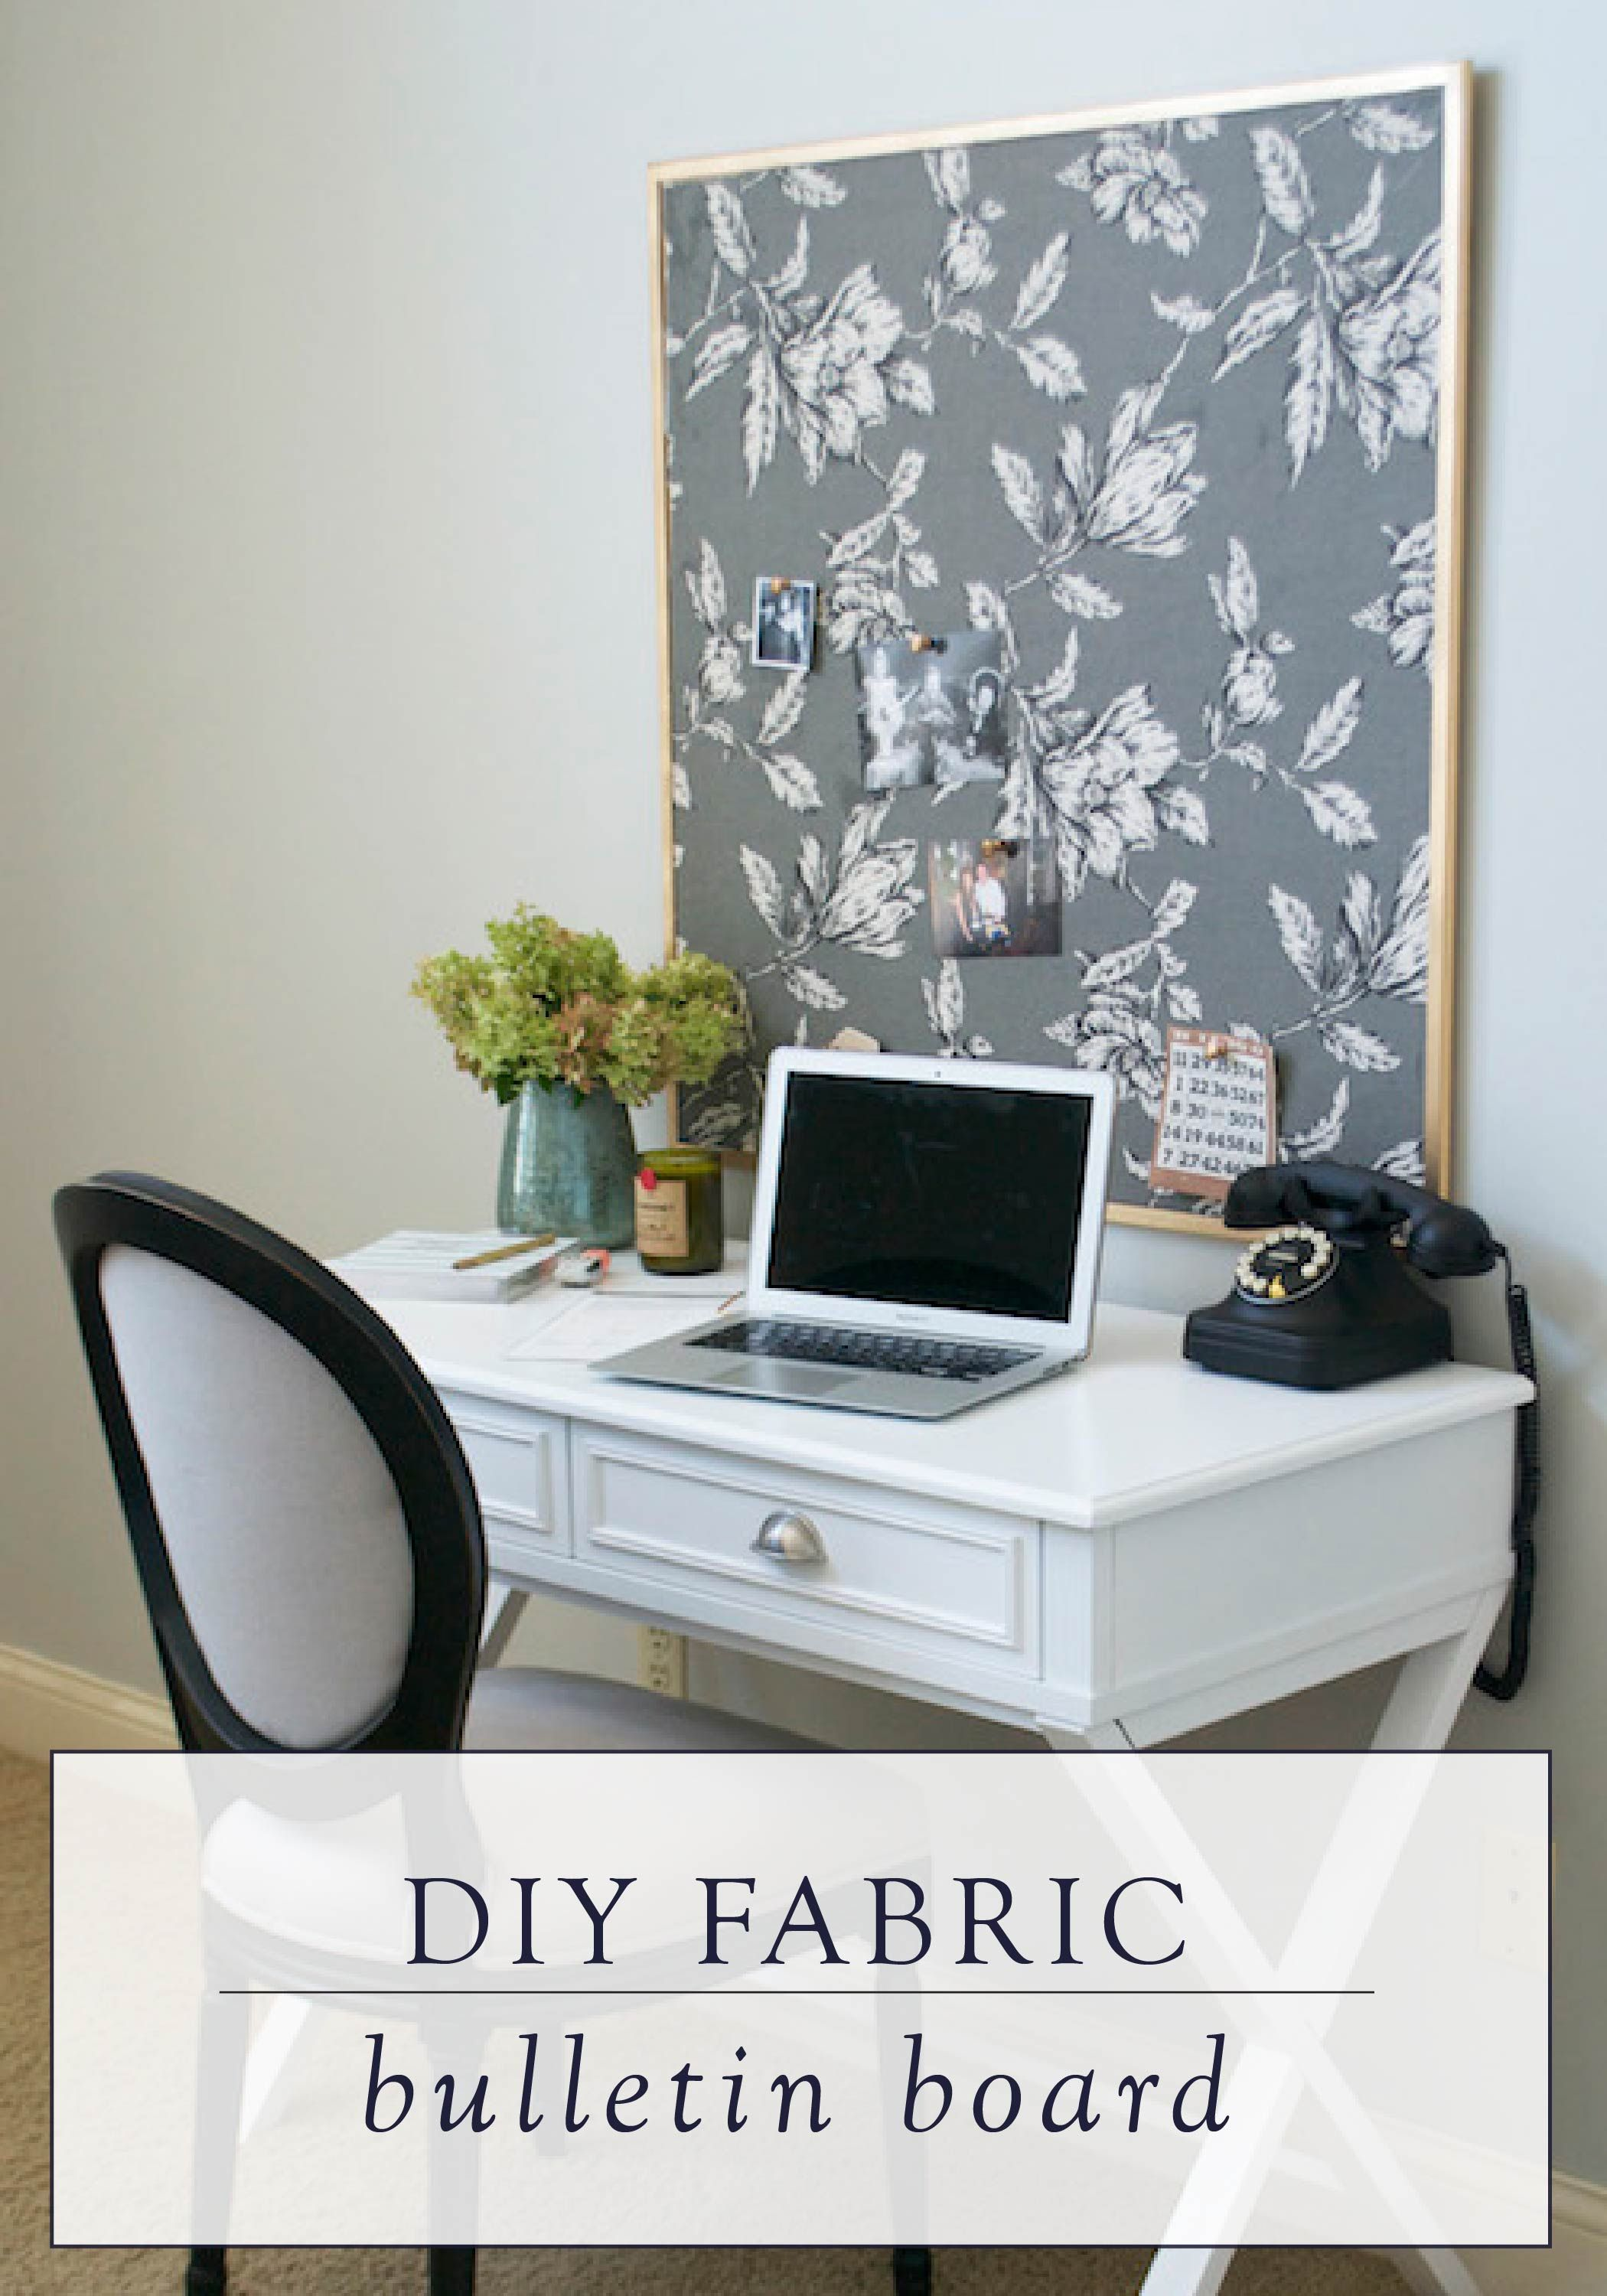 Gentil This DIY Fabric Bulletin Board Tutorial Will Show You How To Create An Easy  Piece Of Wall Art Or A Place To Organize All Your Ideas In Your Home Office.